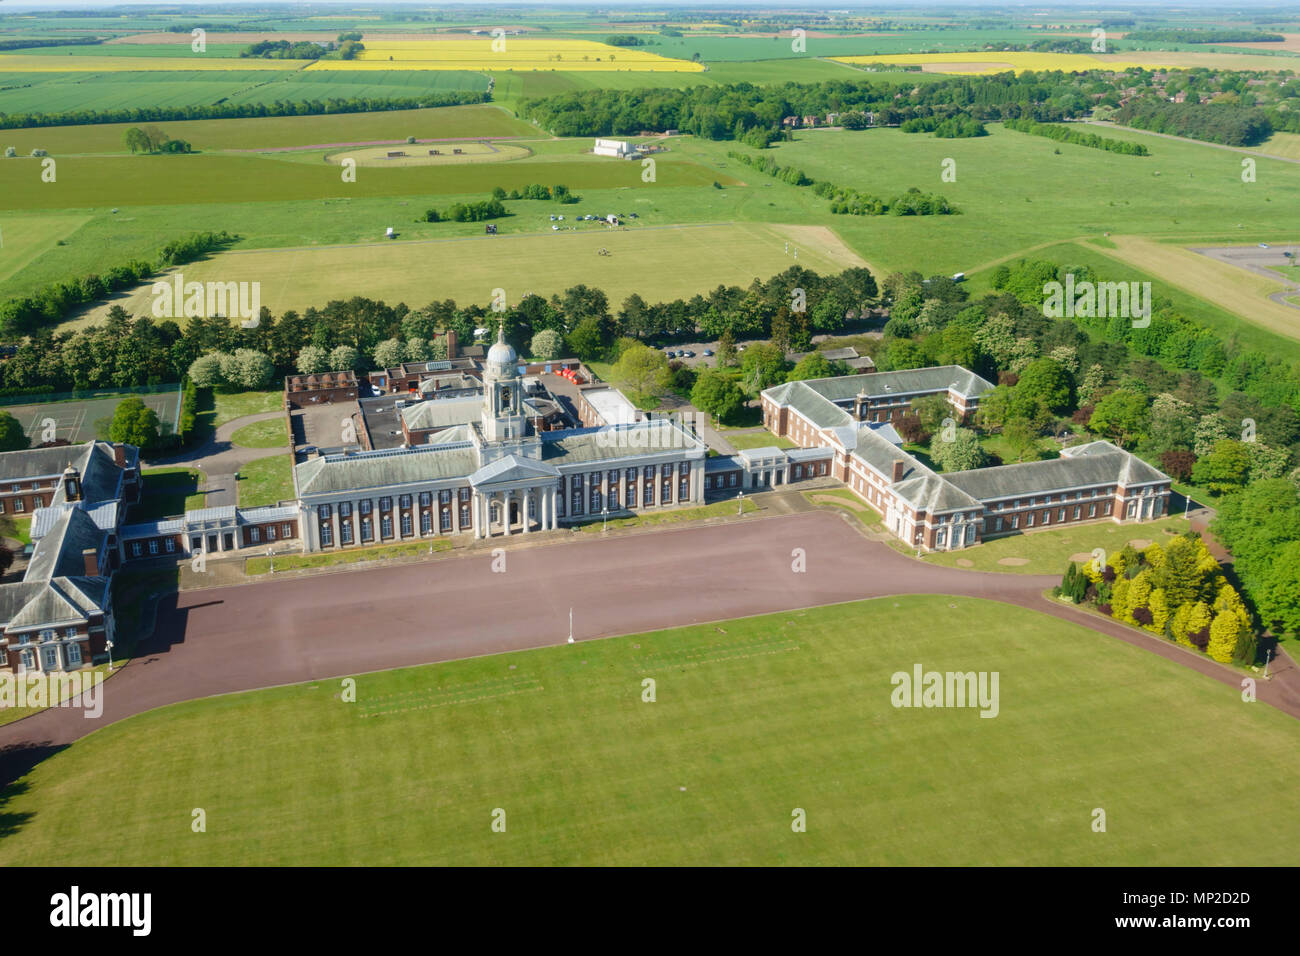 College Hall Officers Mess, CHOM, RAFC Cranwell from above. Sleaford, Lincolnshire, England. - Stock Image